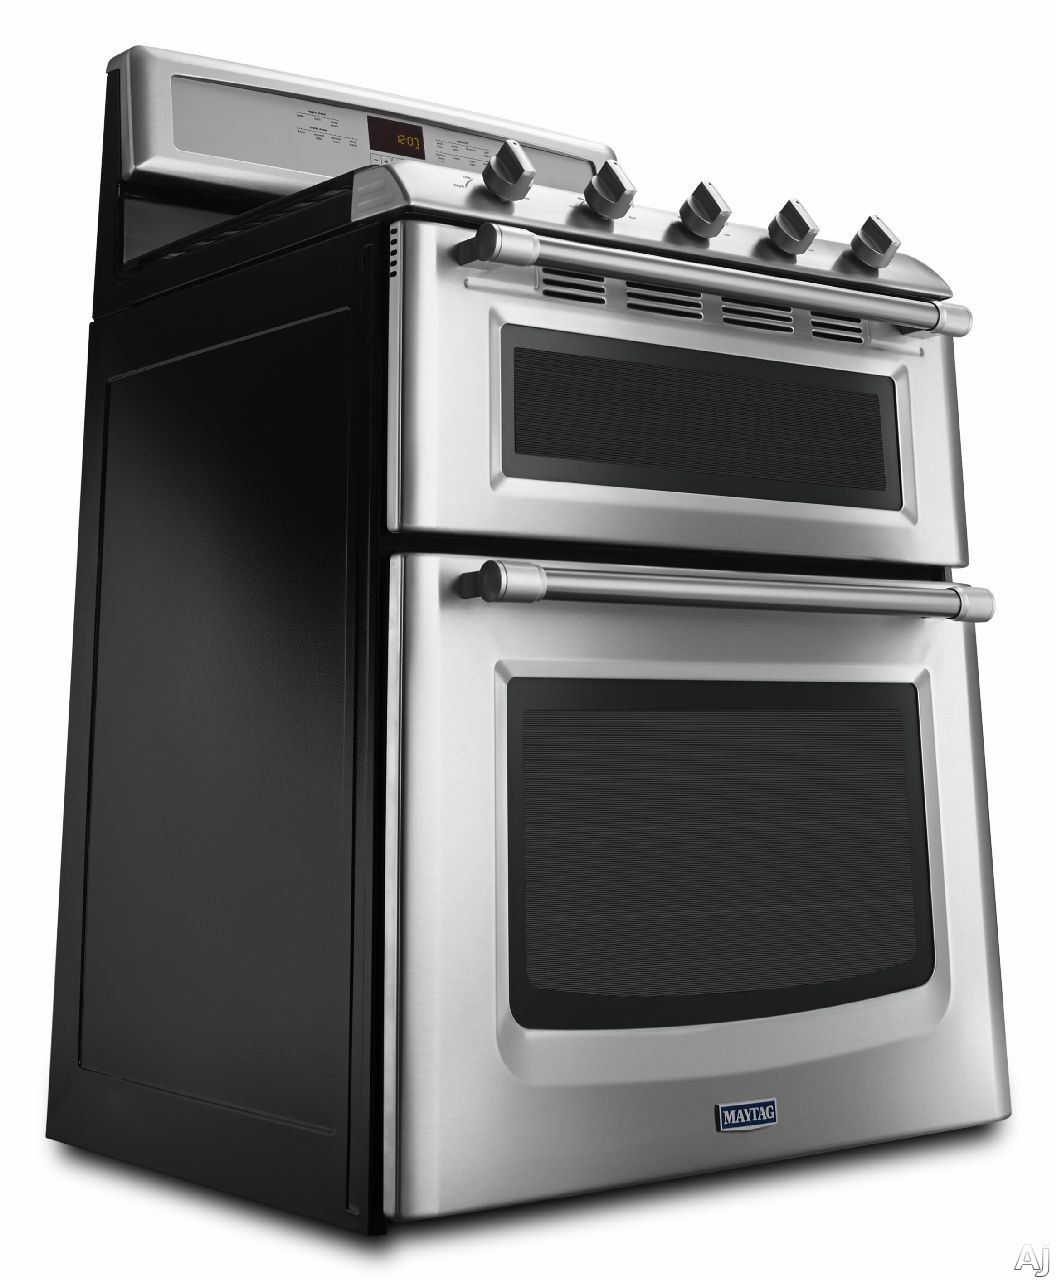 maytag mgt8820ds 30 inch freestanding double oven gas